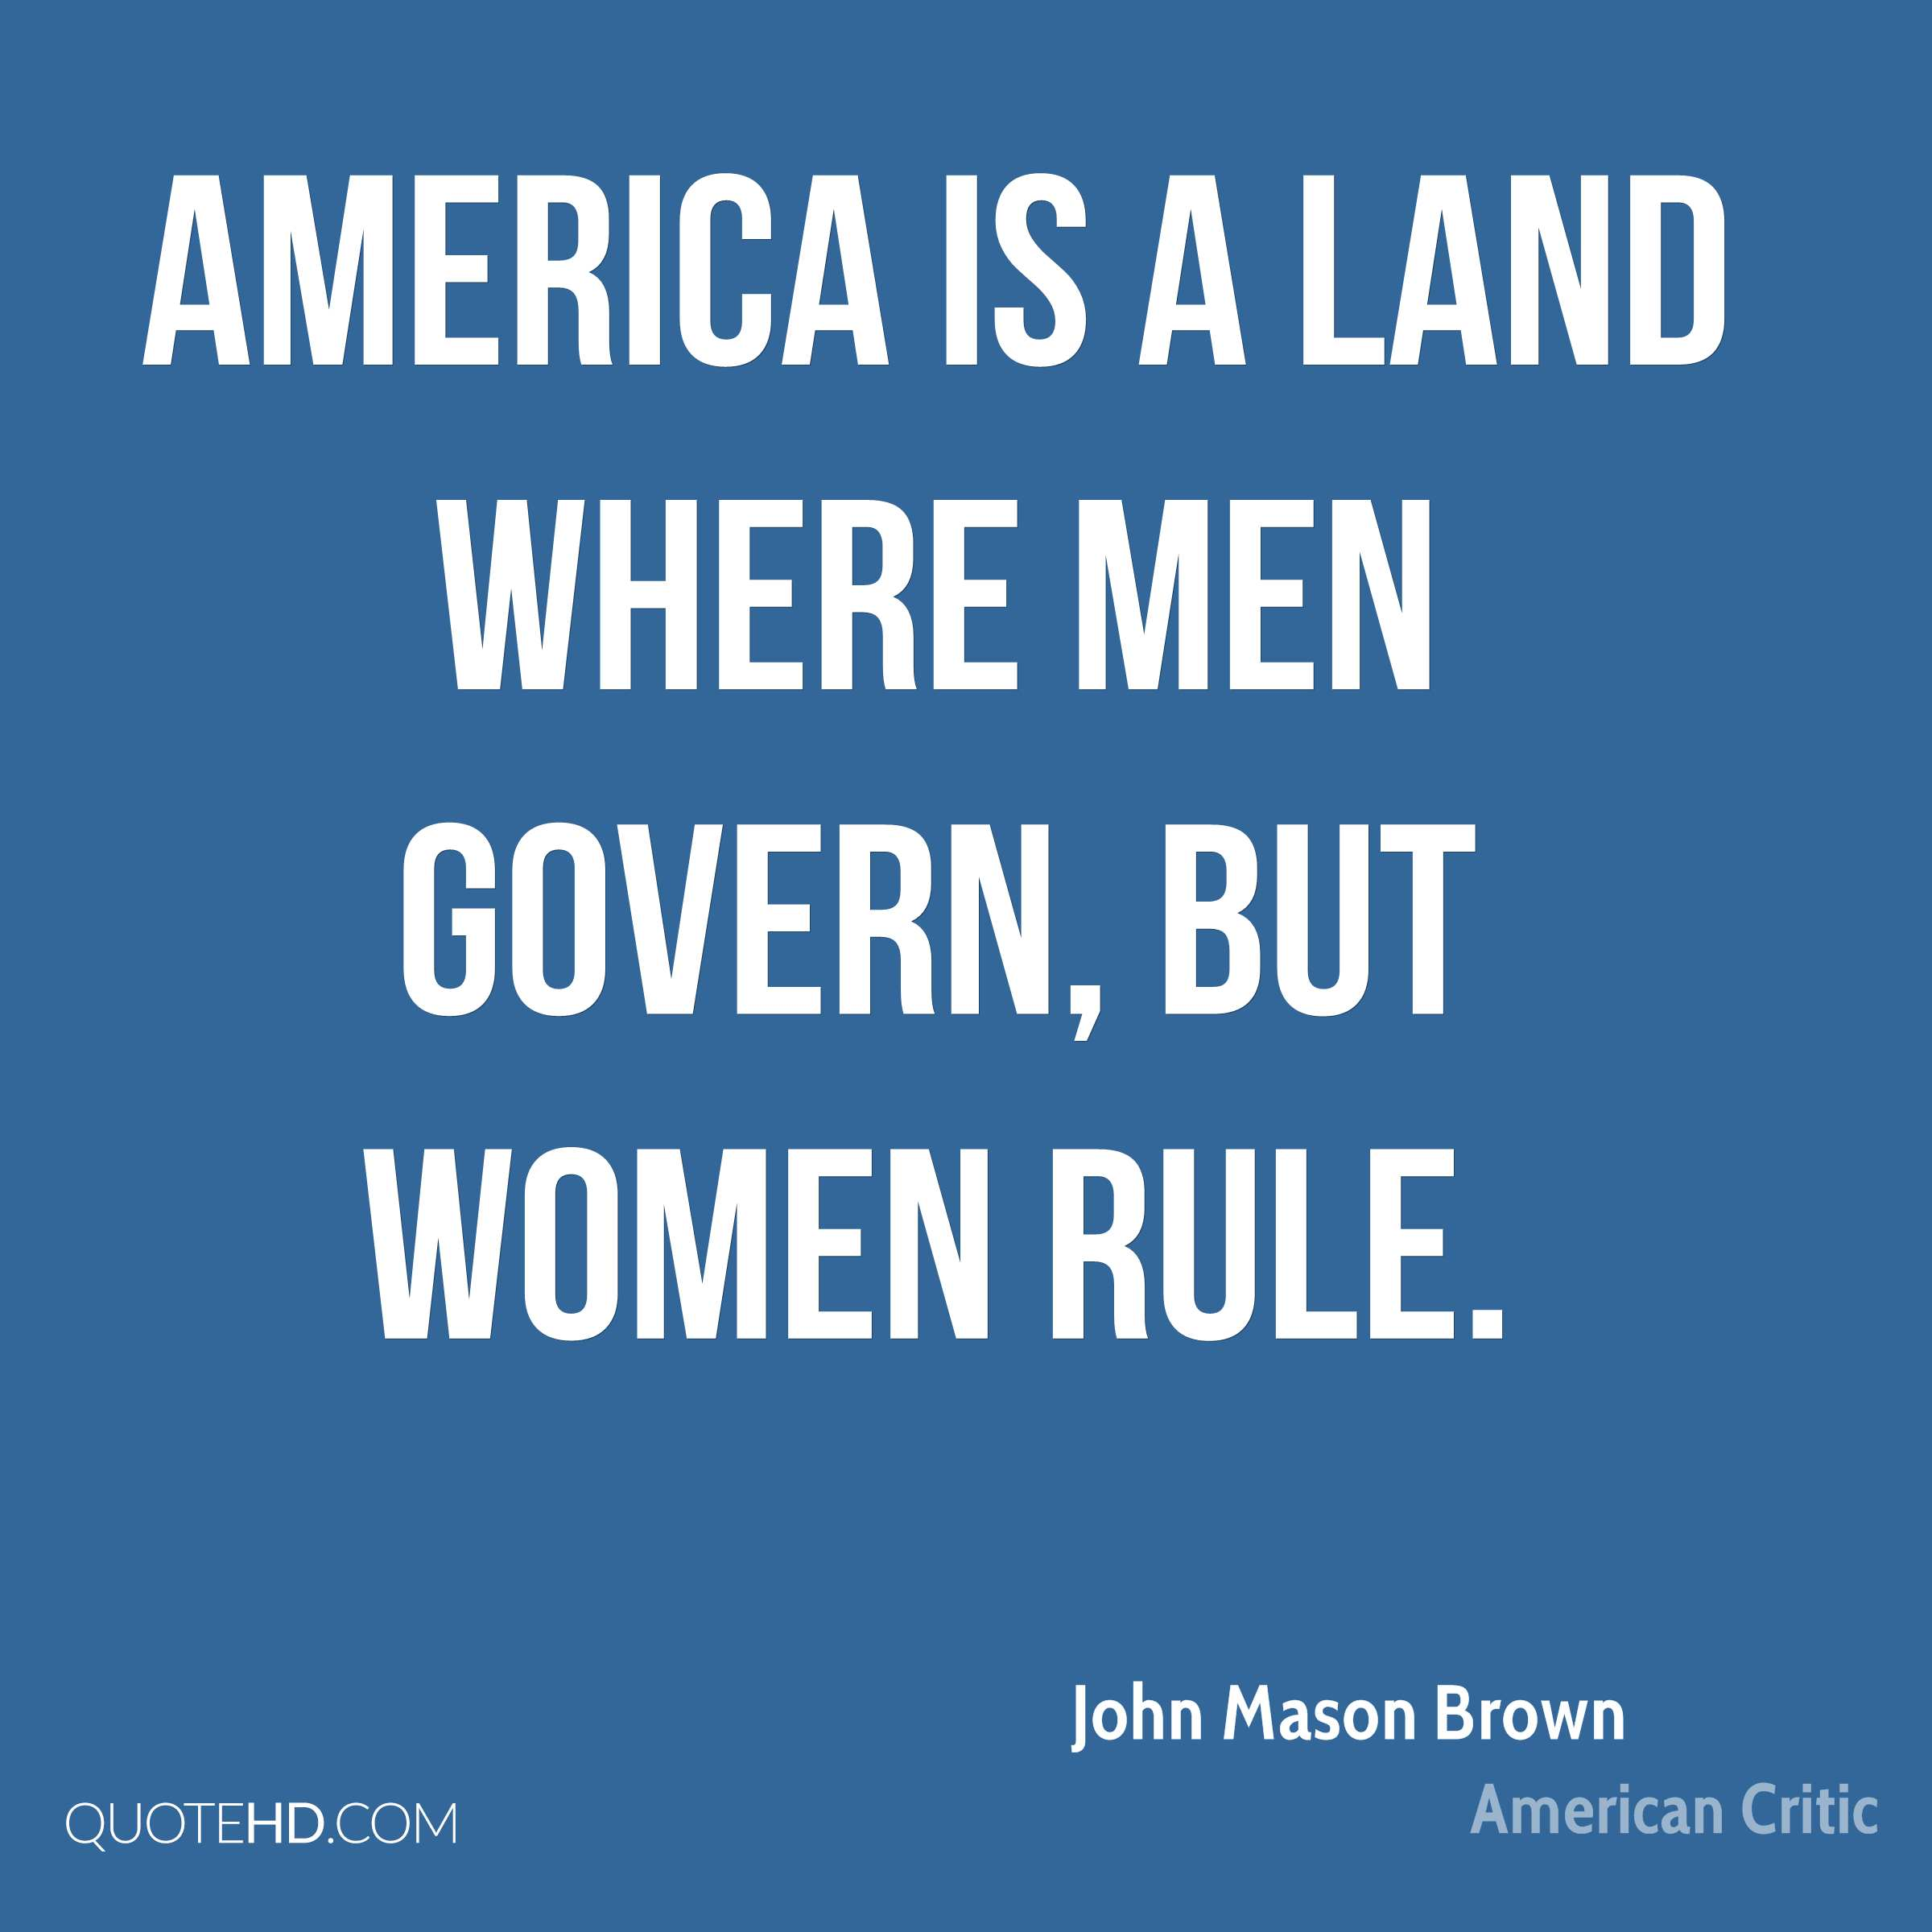 America is a land where men govern, but women rule.